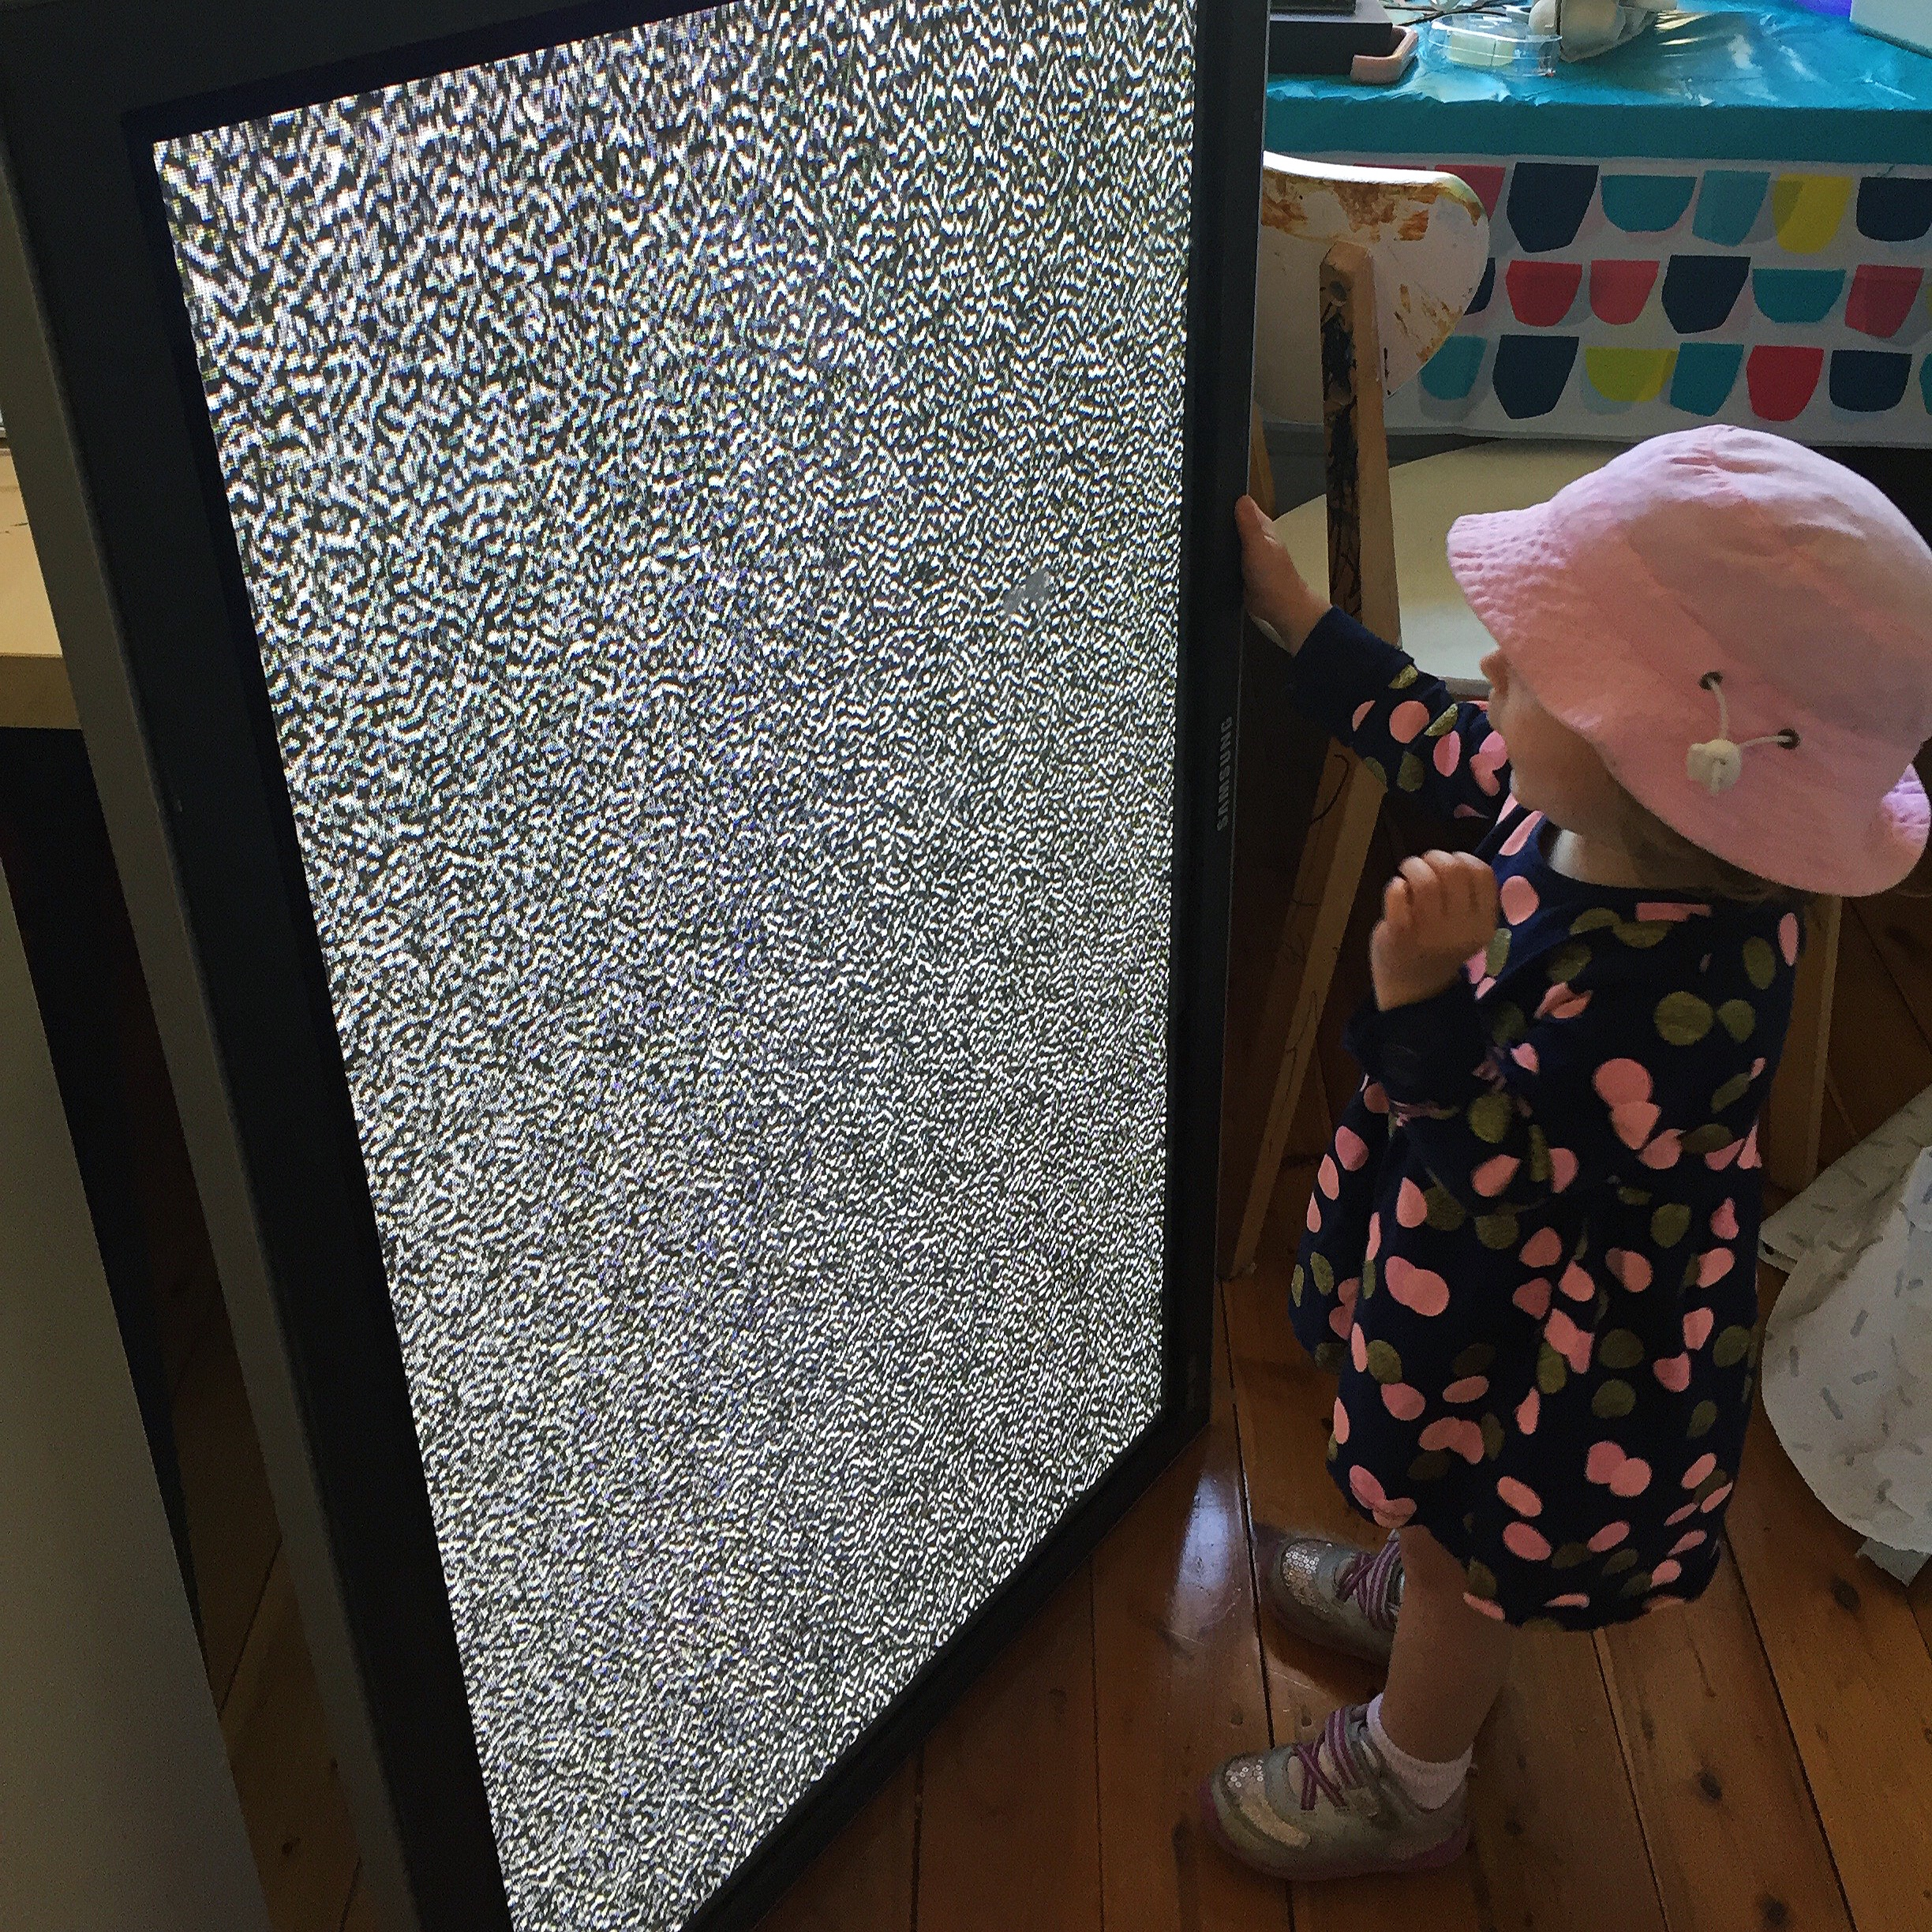 Hazel with one of the two working plasma TV's we found this week